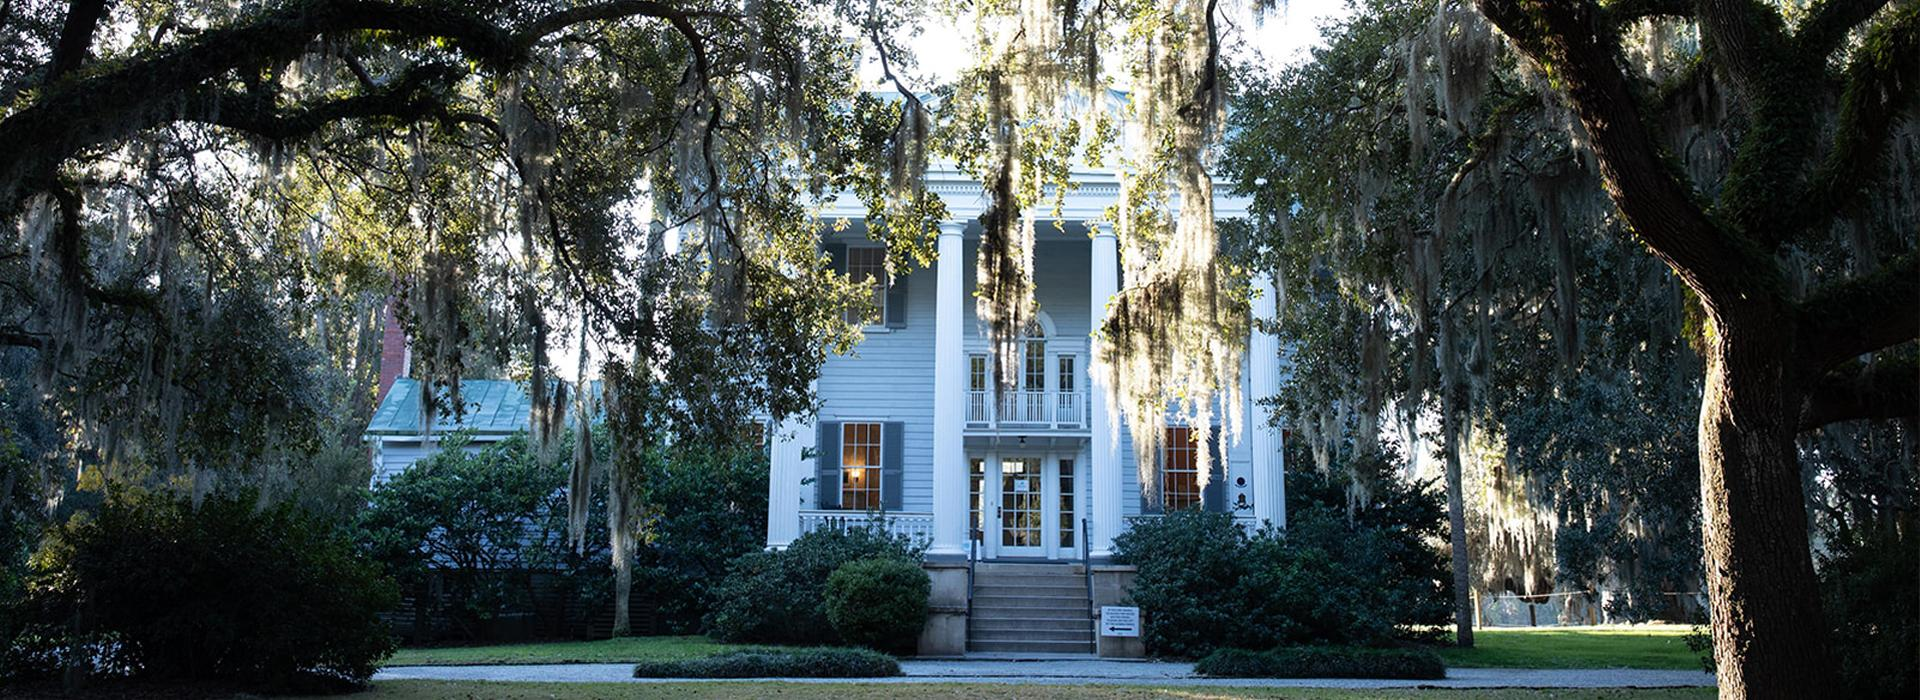 A descendant of an enslaved person tours Charleston's plantations